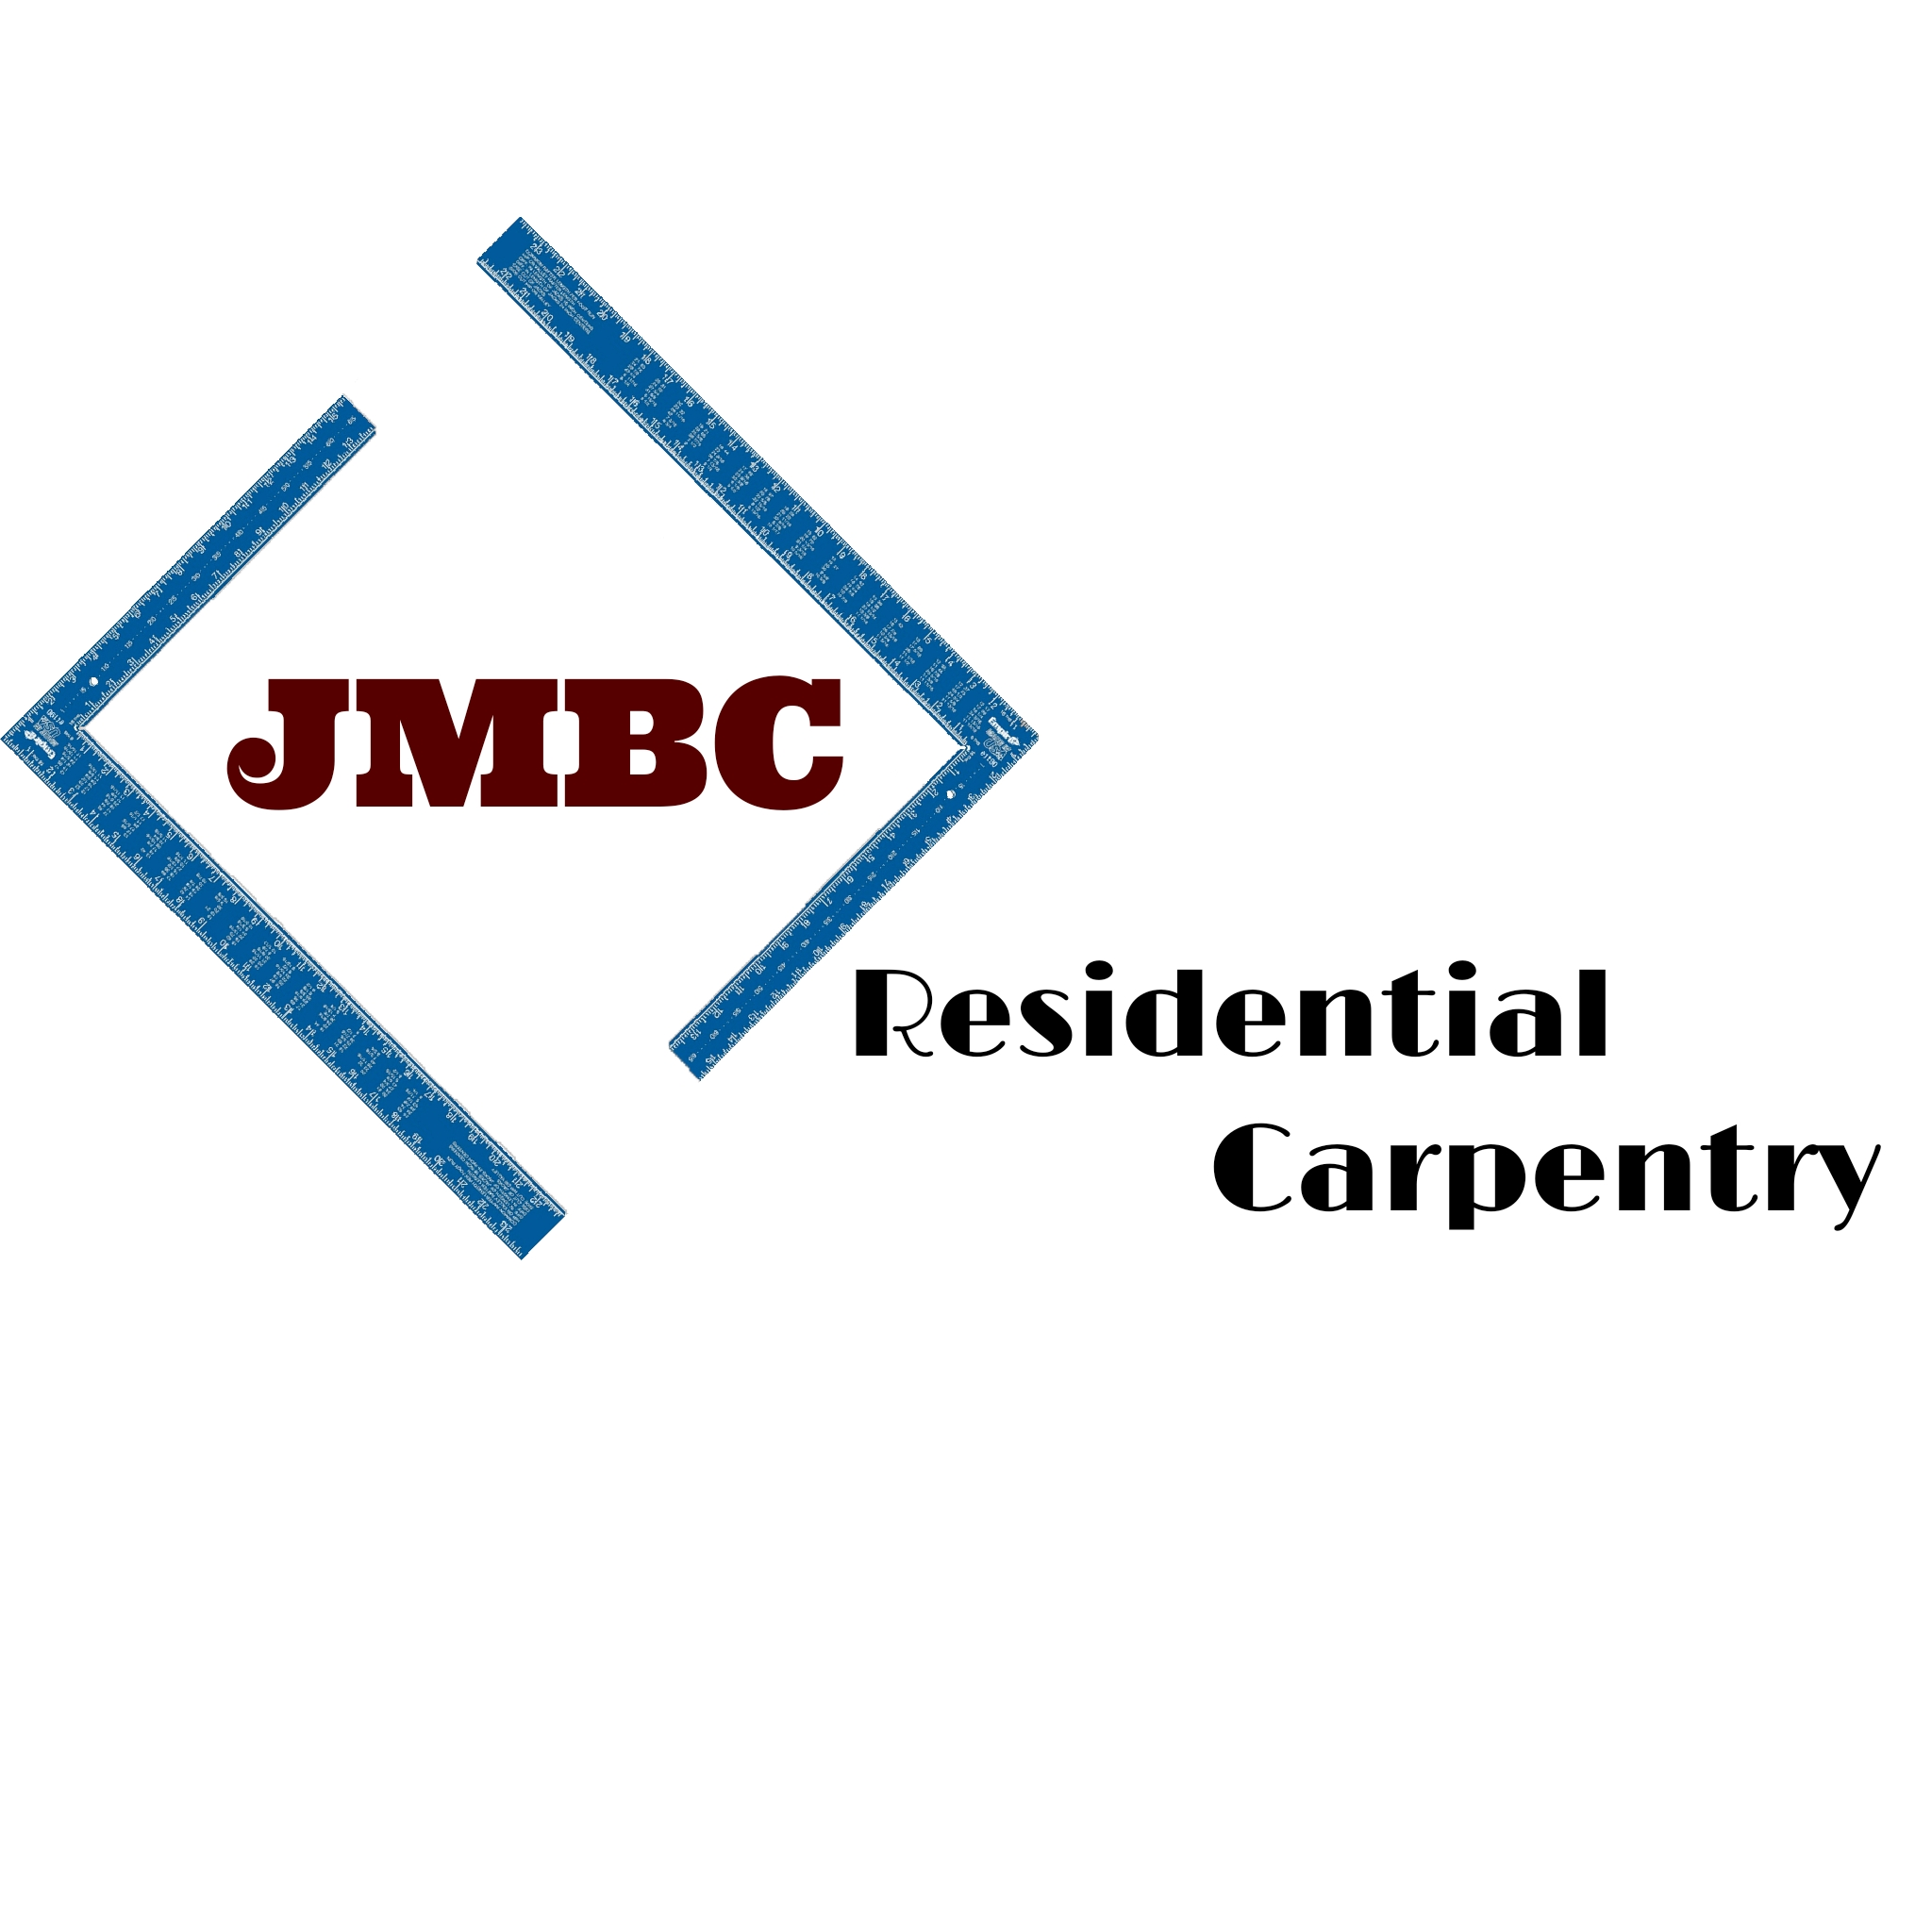 Jmbc Residential Carpentry Kensington Connecticut Ct